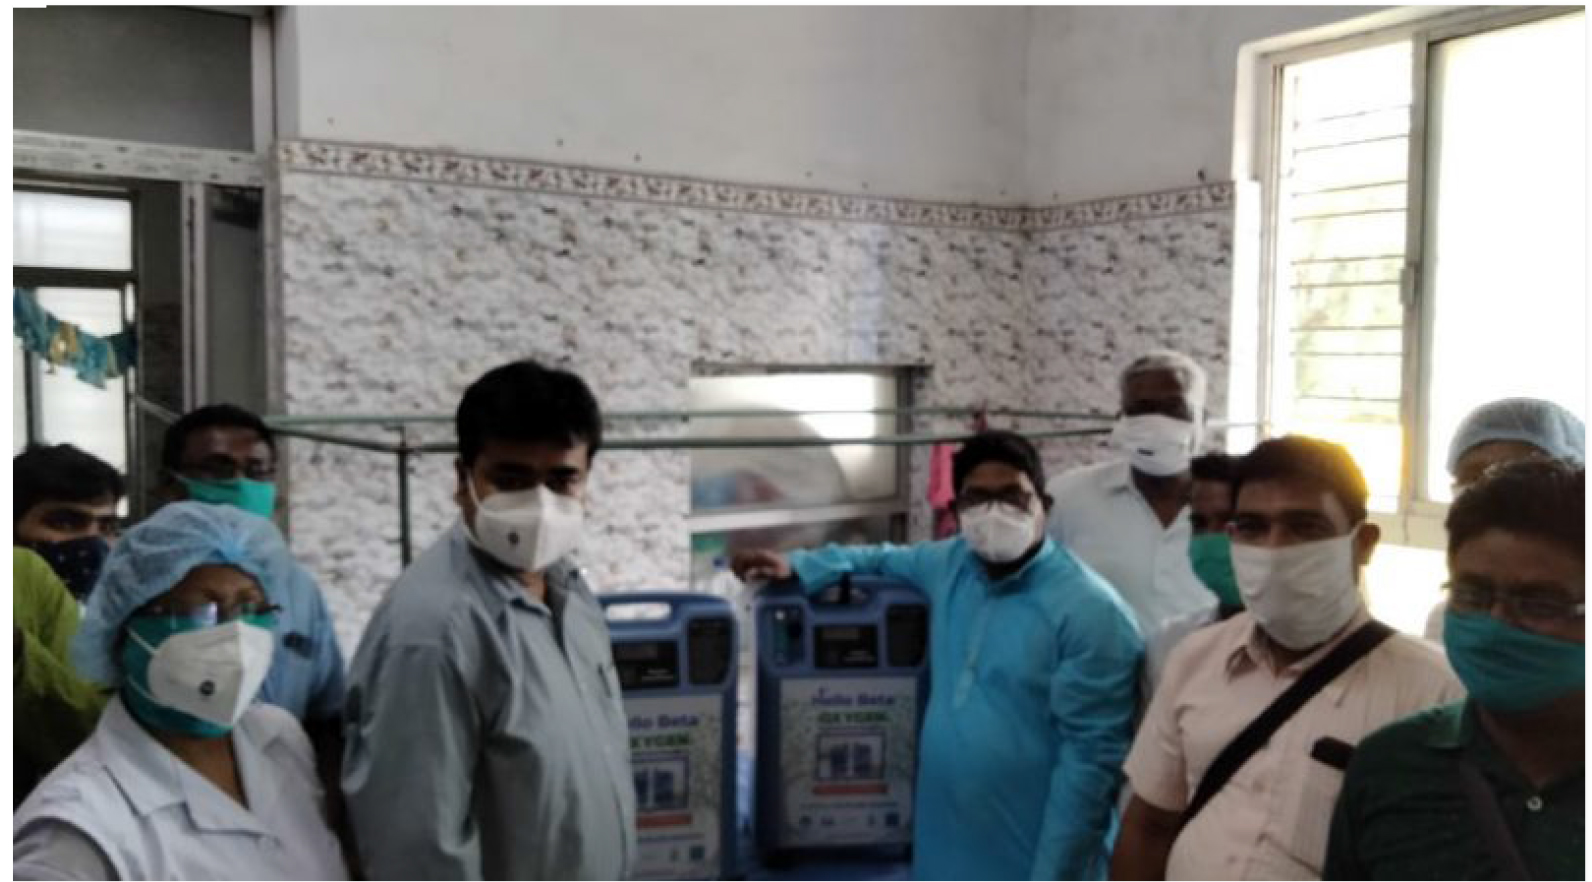 To Help The Covid Patients Mukti Suppoerted Raidighi Rural Hospital With Two Oxygen Concentrator On 14th May, 2021